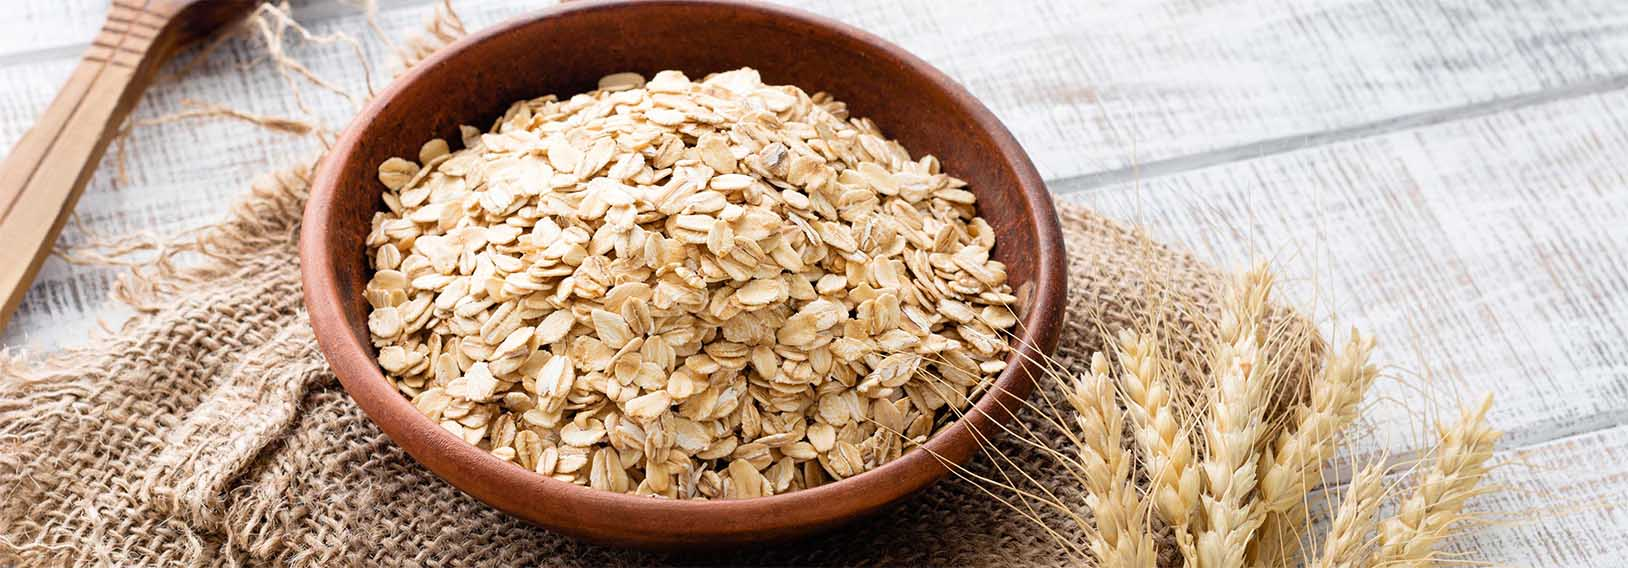 10 Foods that Lower Cholesterol